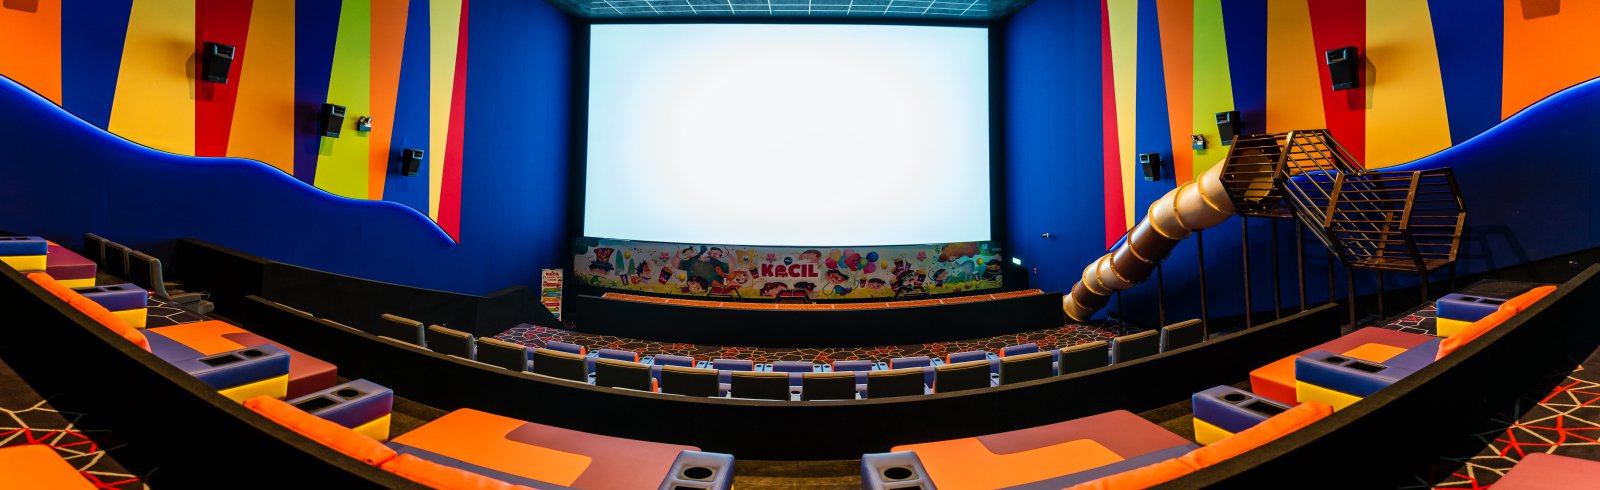 Nestia Mbo Cinemas Kecil Hall Is Perfect For Families Cause